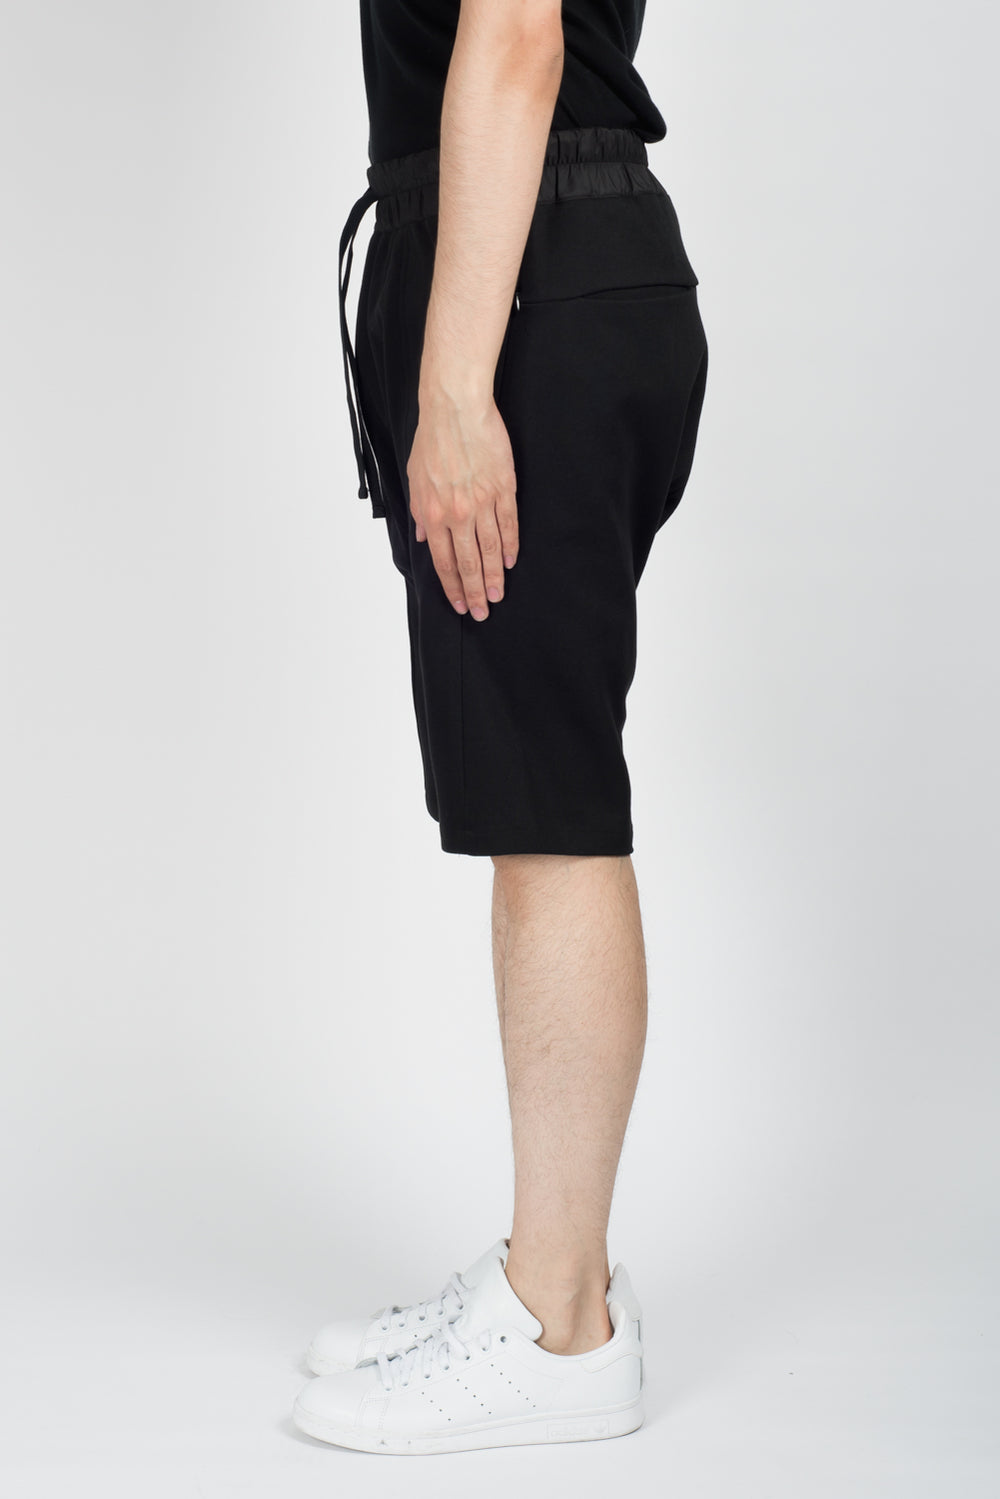 Les Benjamins Okin Shorts In Black